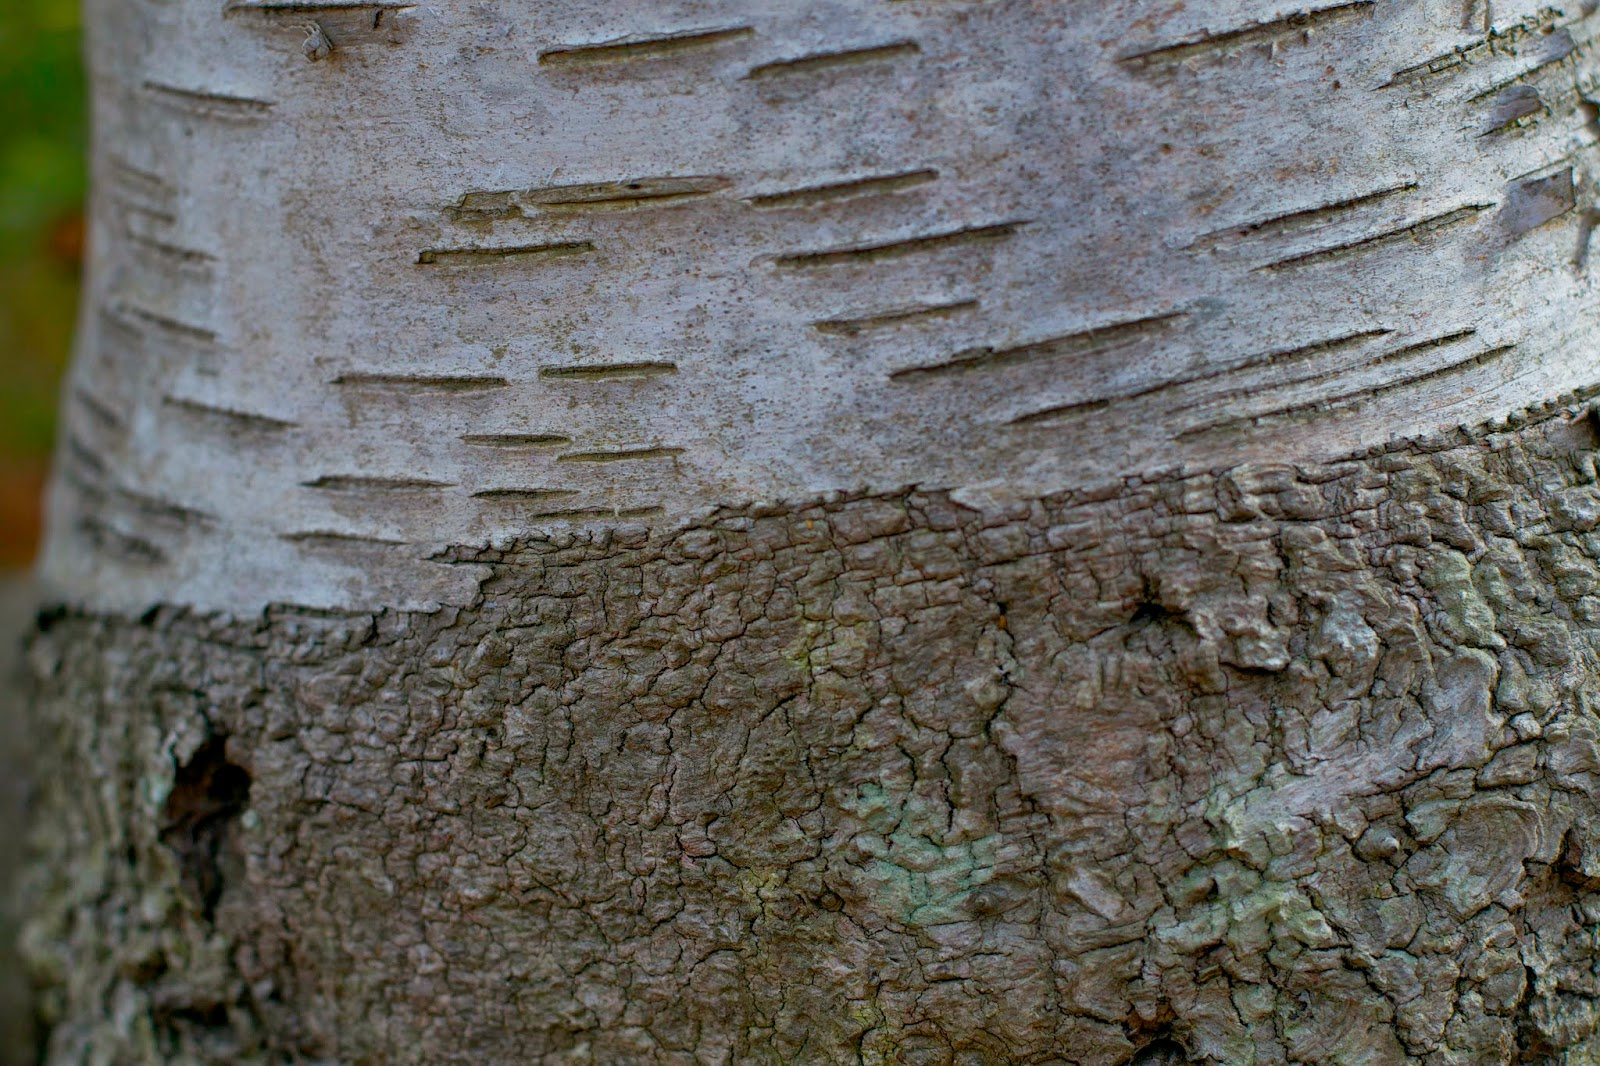 I love birch trees, I love the bark, the textures, the colors...